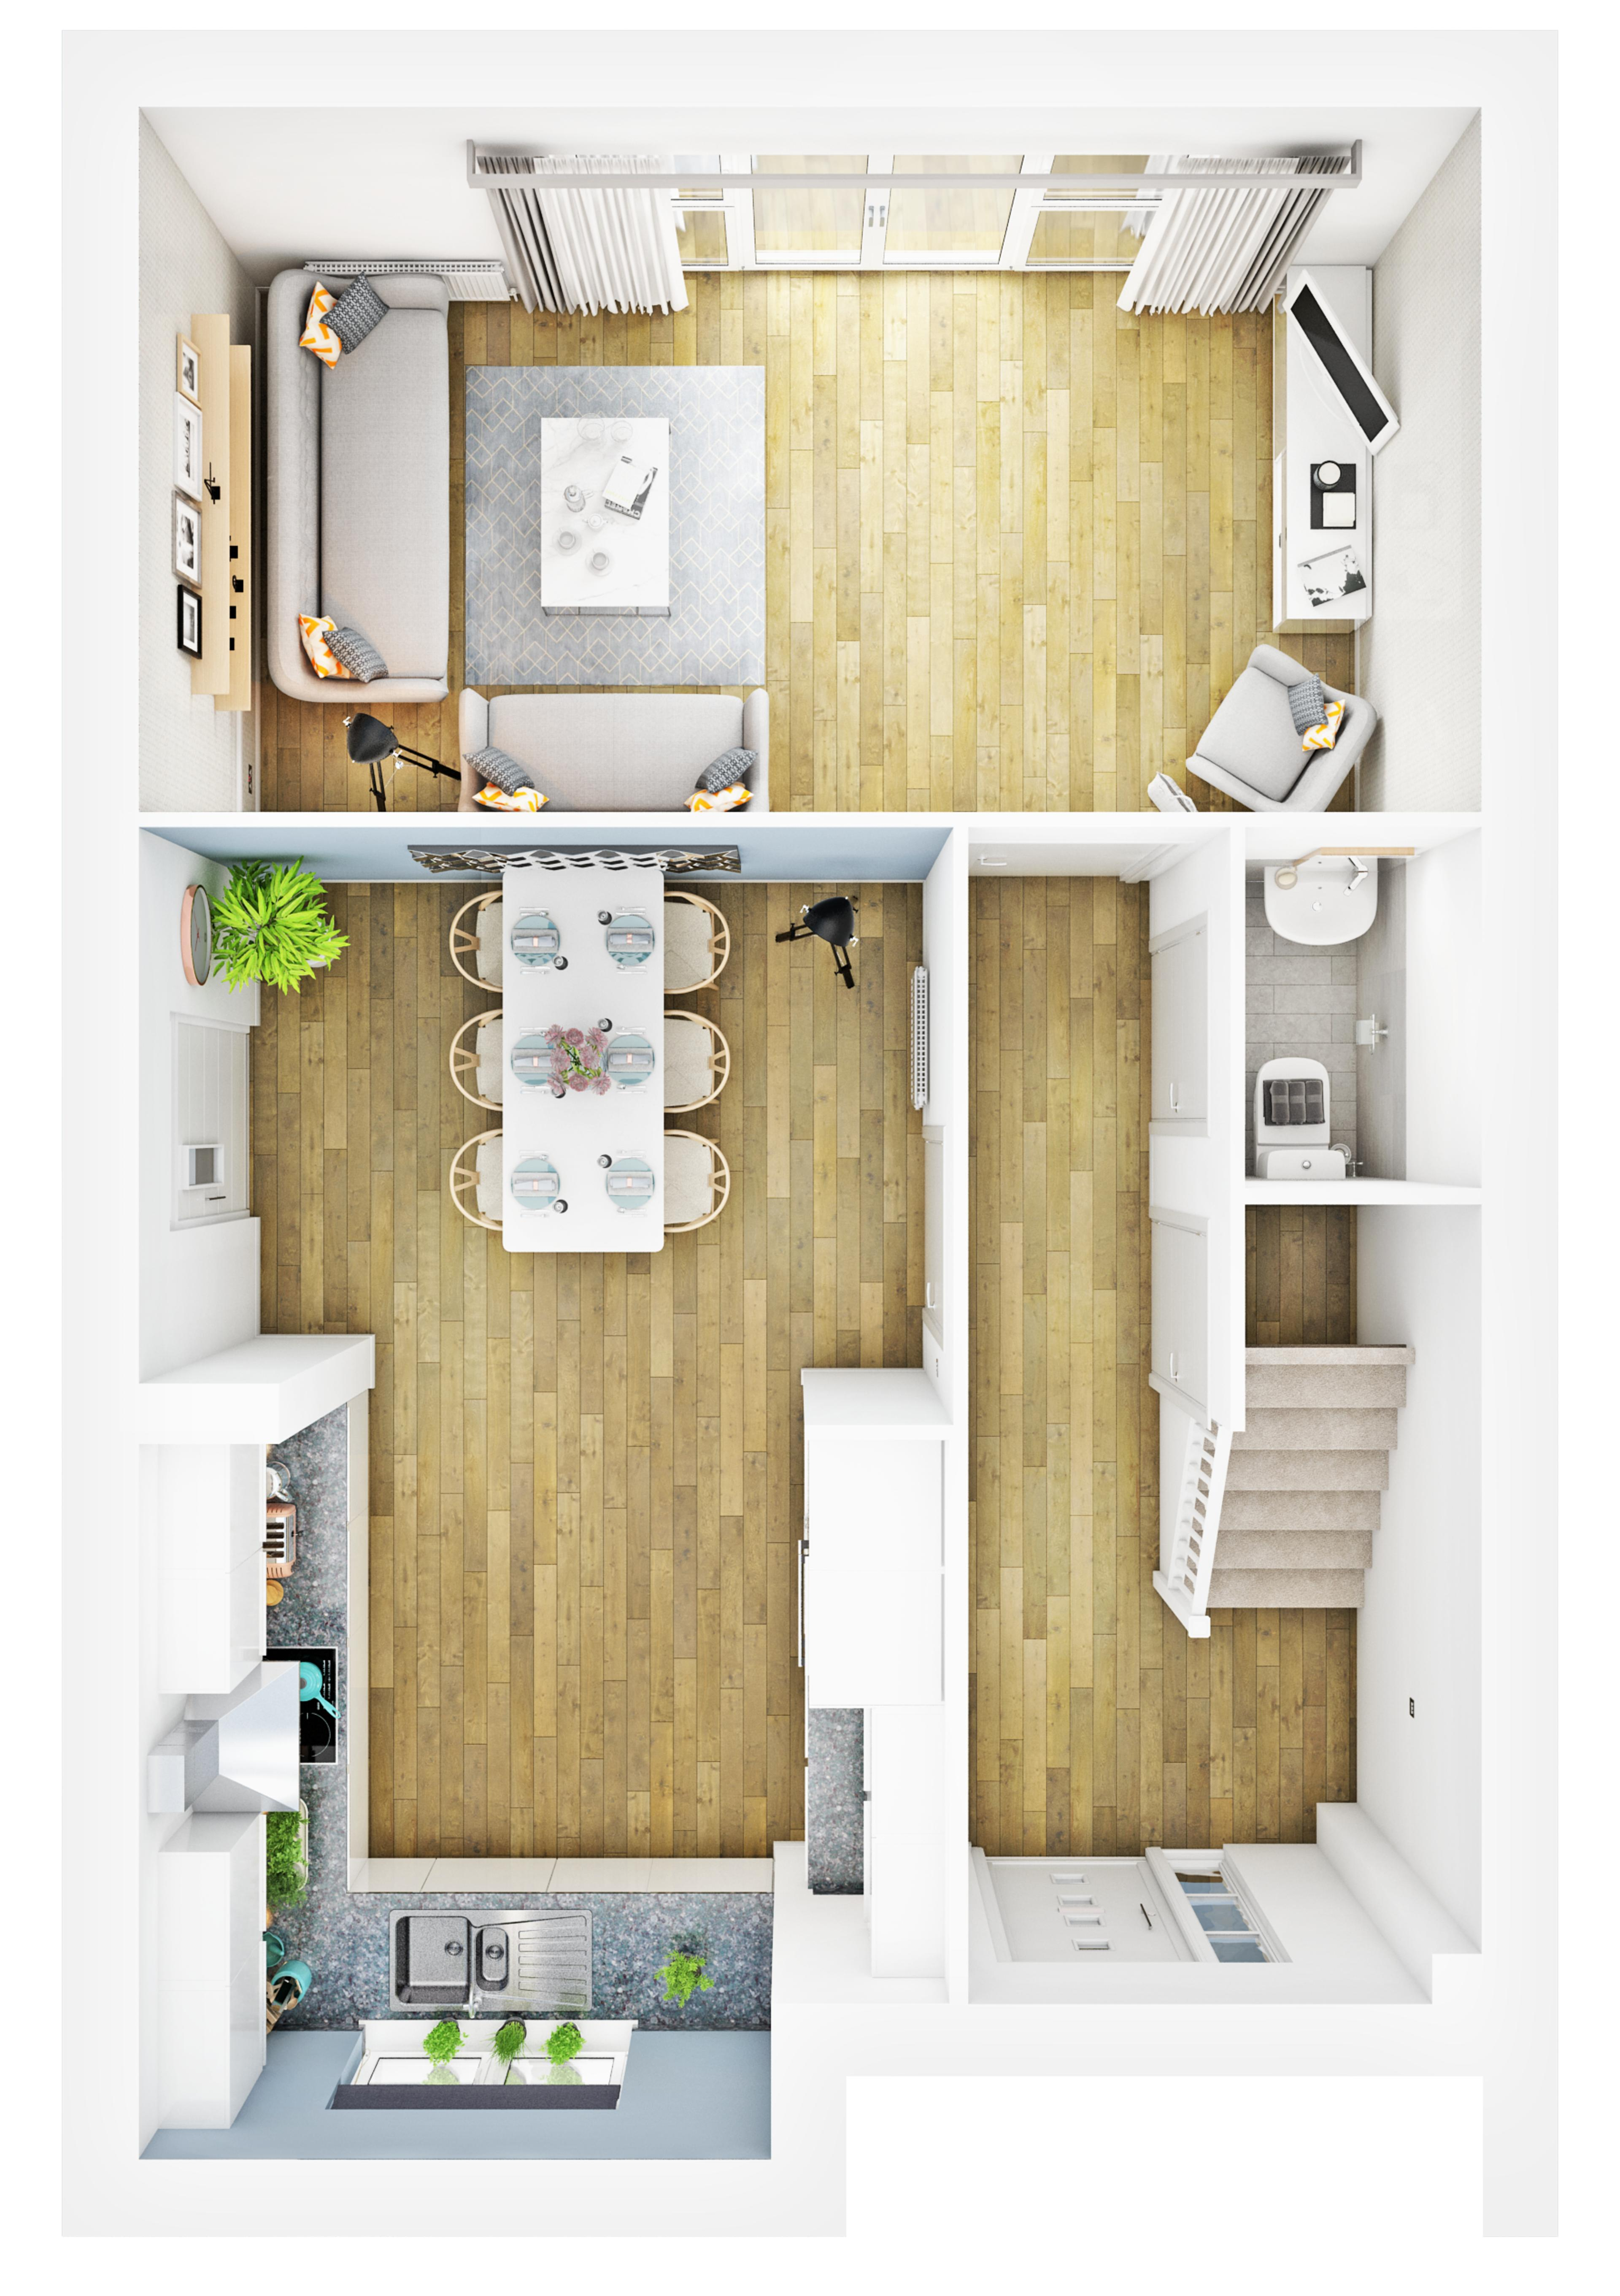 Meaux Rise-Forte-Ground Floor